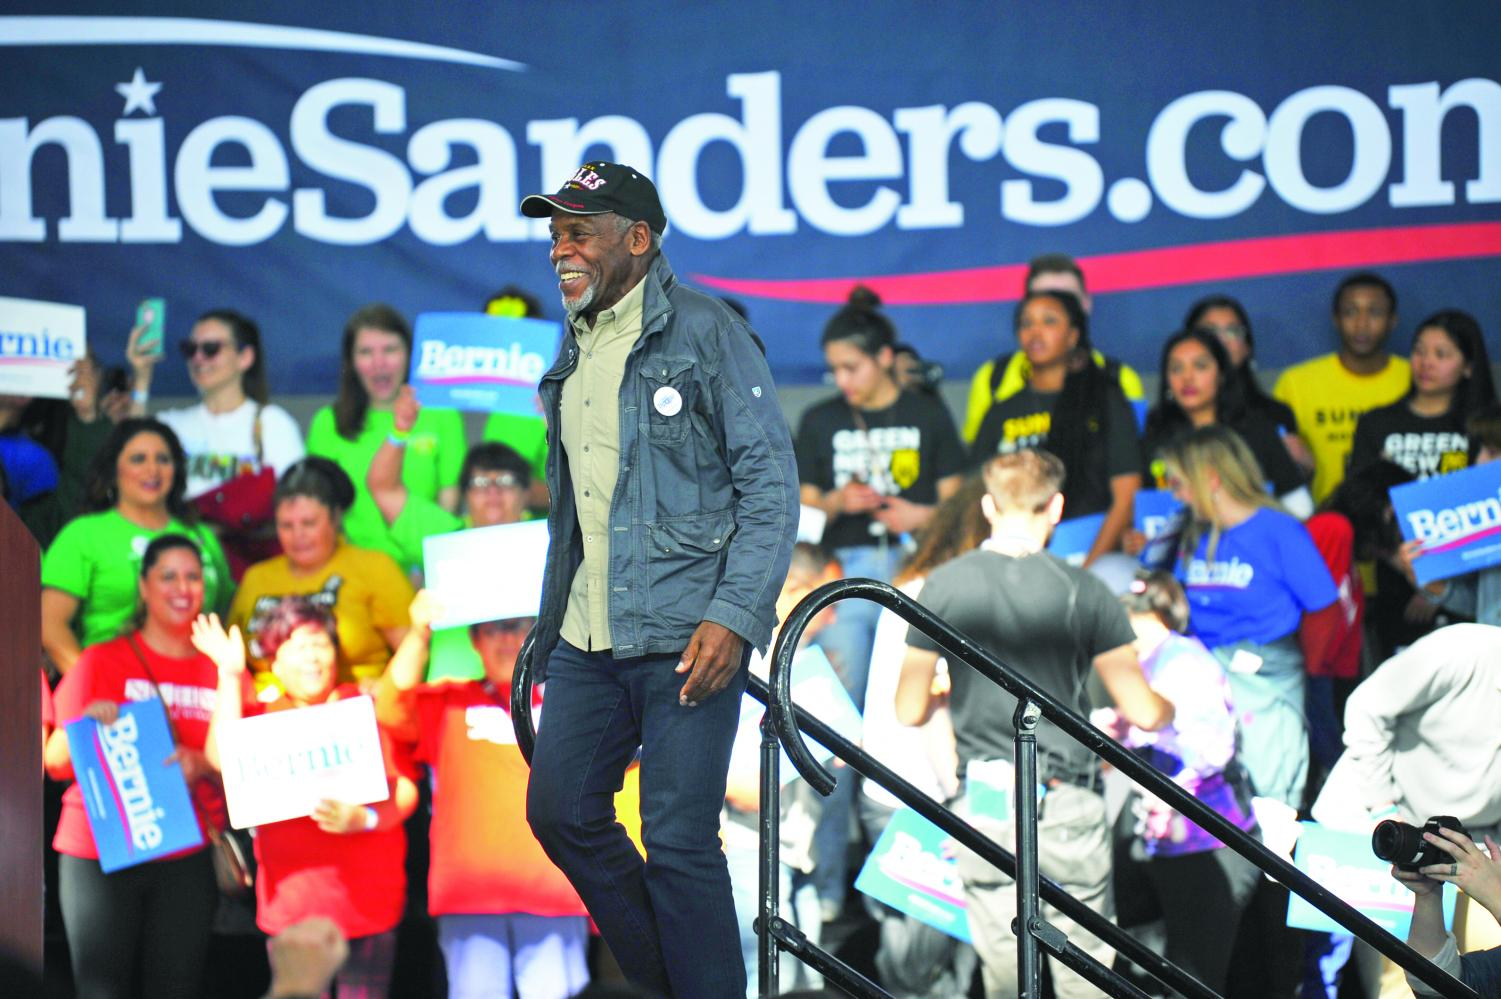 Activist+Danny+Glover%2C+one+of+many+speakers+on+hand+at+a+campaign+rally+for+Bernie+Sanders+on+Monday%2C+walks+onto+the++rally+platform+to+introduce%0ASanders+to+the+crowd+at+Richmond%E2%80%99s+Craneway+Pavilion.+